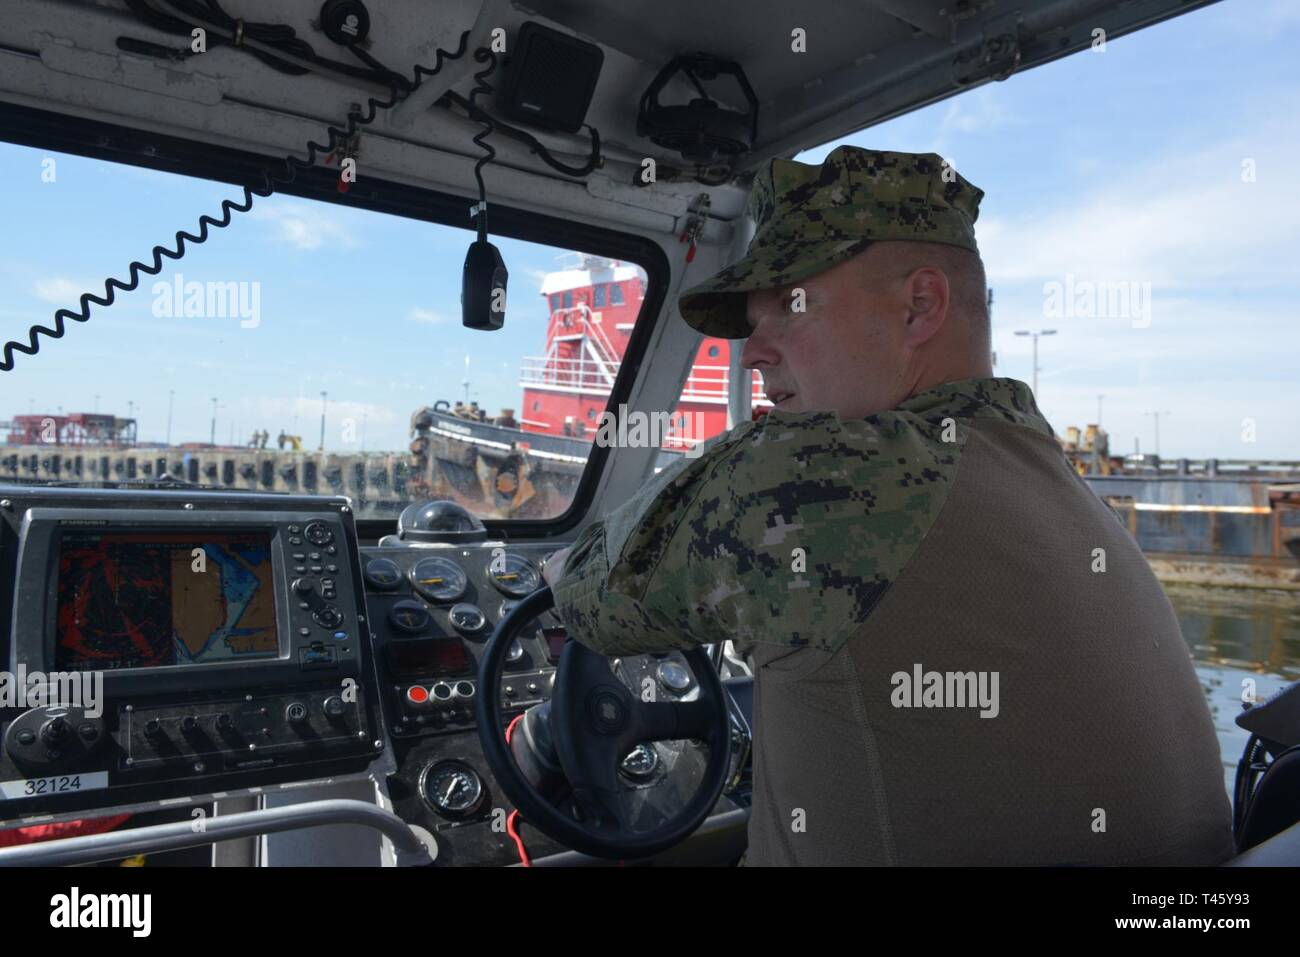 Coast Guardsmen from Port Security Unit 309 waterside division aboard a 32-foot Transportable Port Security Boat acts as a safety observer during the real-time Field Training Exercise (FTX) in the Port of Tampa Bay on Monday, March 11, 2019. PSU 301, stationed in Cape Cod, Mass, traveled to Tampa Bay, FL to conduct this very important FTX due to unfavorable weather conditions in the Northeast. U.S. Coast Guard Stock Photo